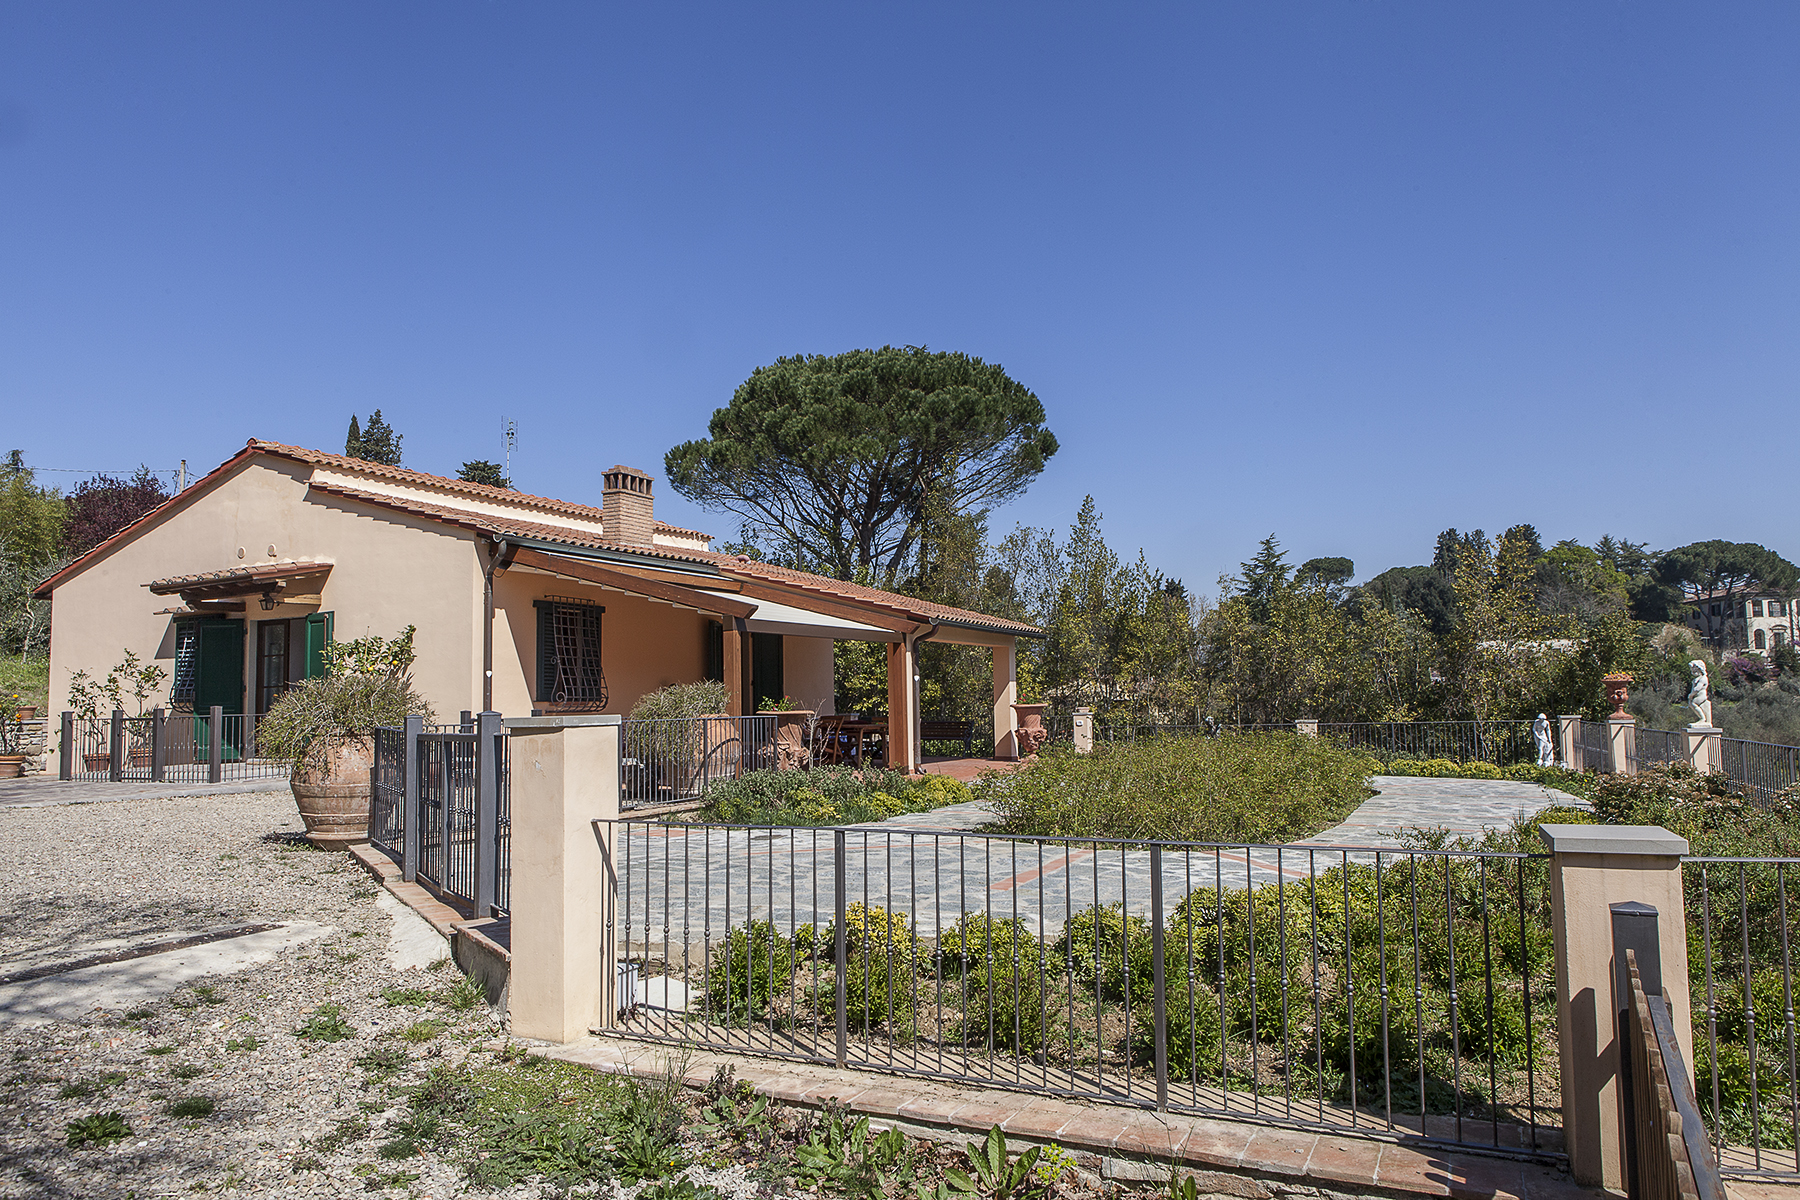 Single Family Home for Sale at Charming detached house in Florence Via San Felice a Ema Firenze, Florence 50100 Italy